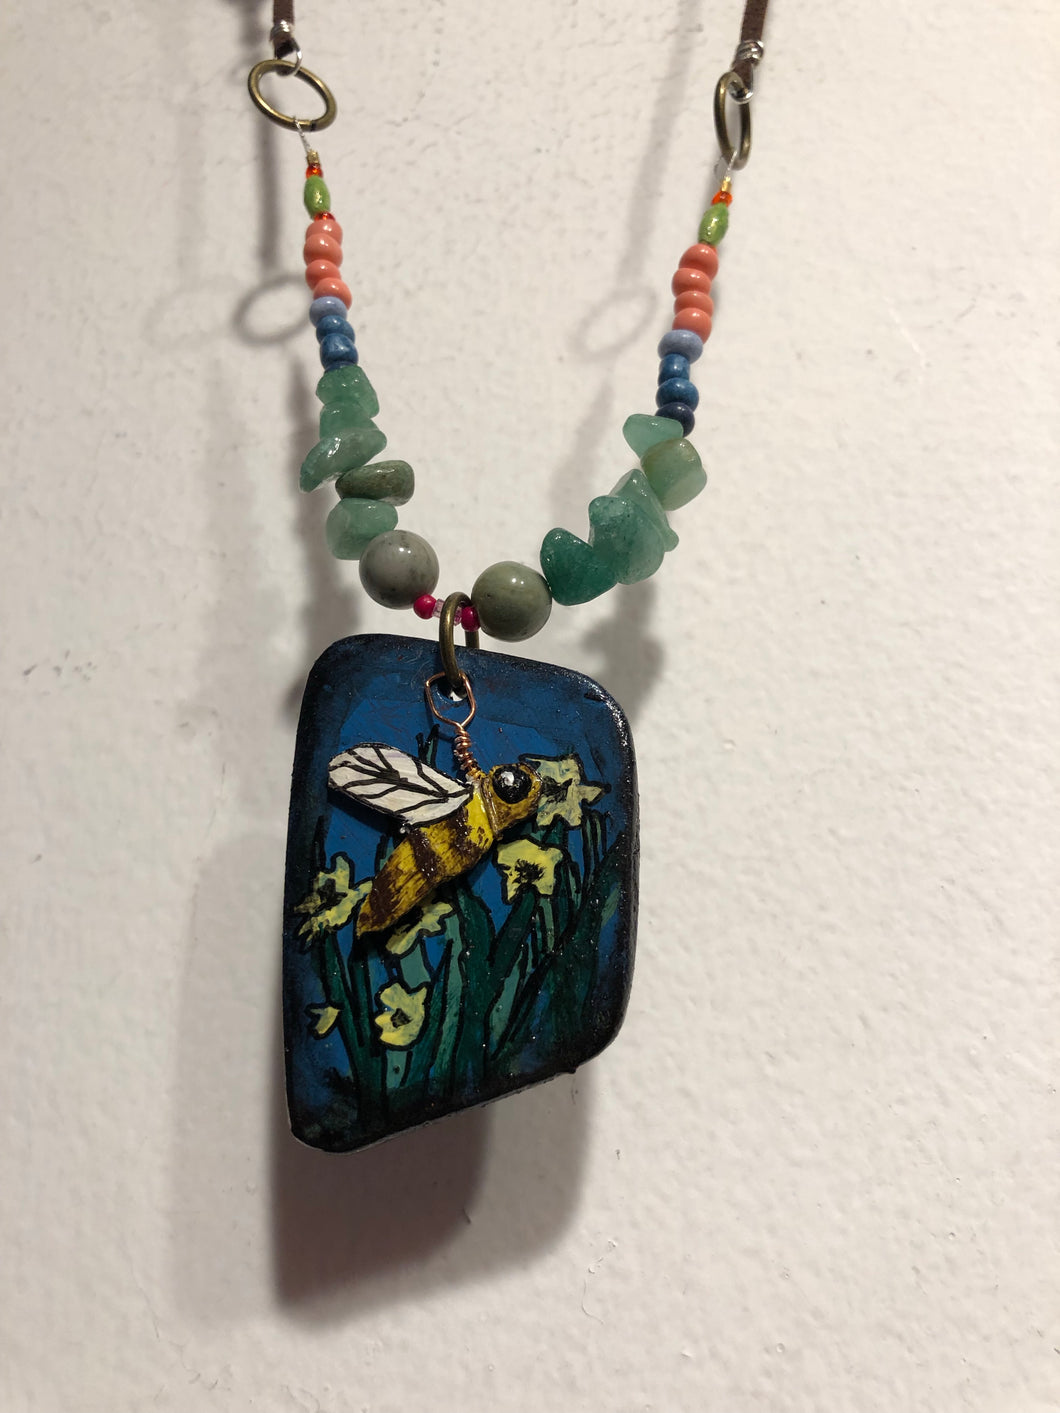 Day and Night jewelry line created by Sharon Pena  is crafted of leather, various stones and beads.  This line is all hand painted.